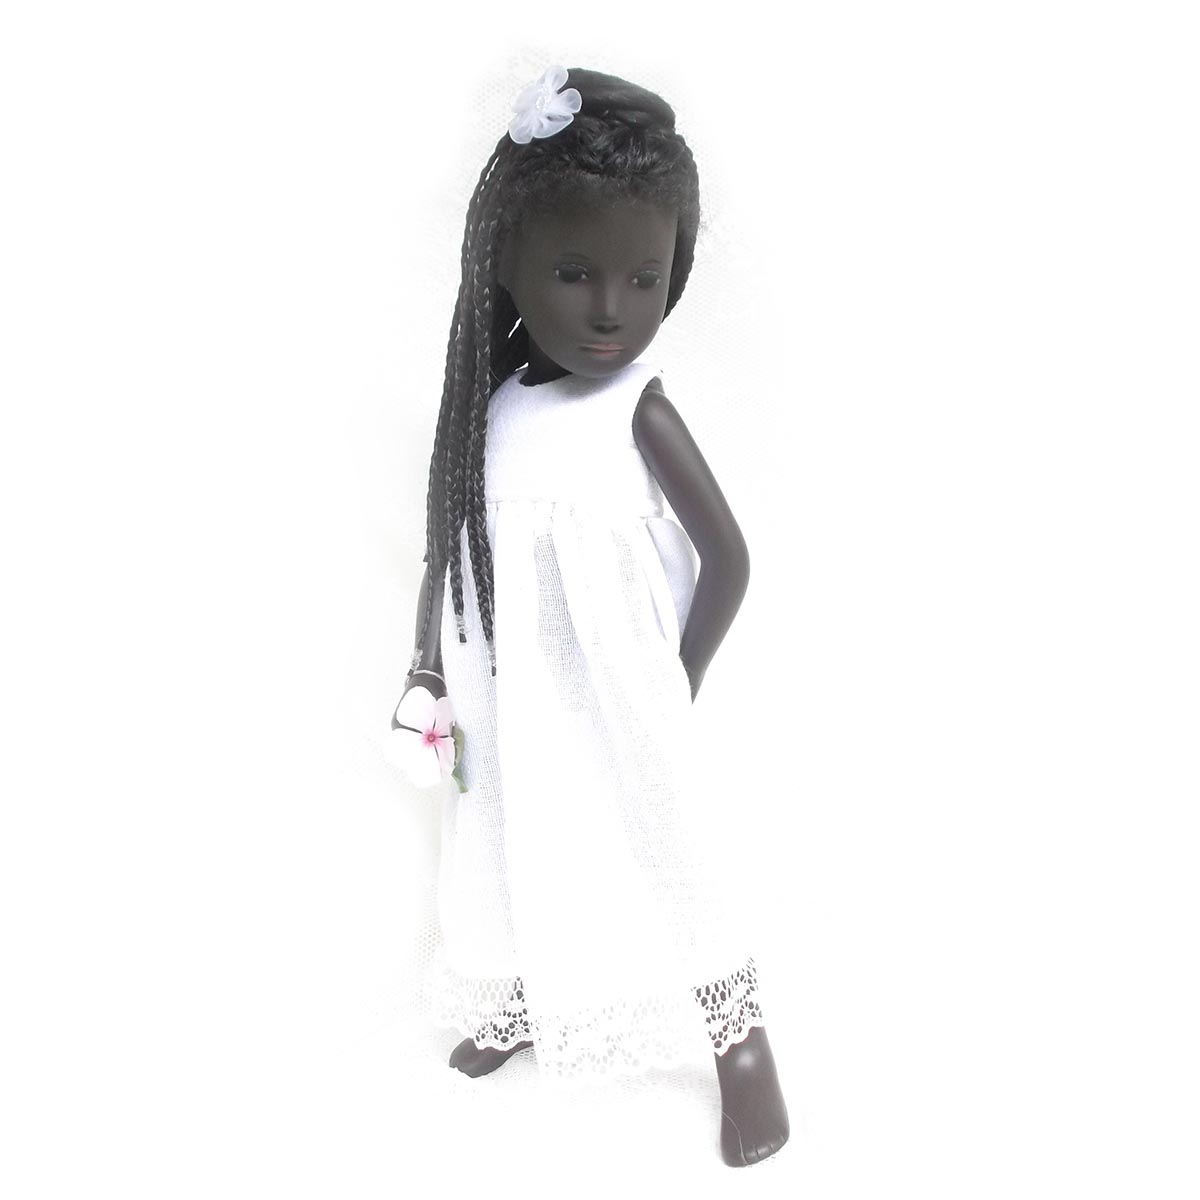 Caleb Sasha Doll Restored